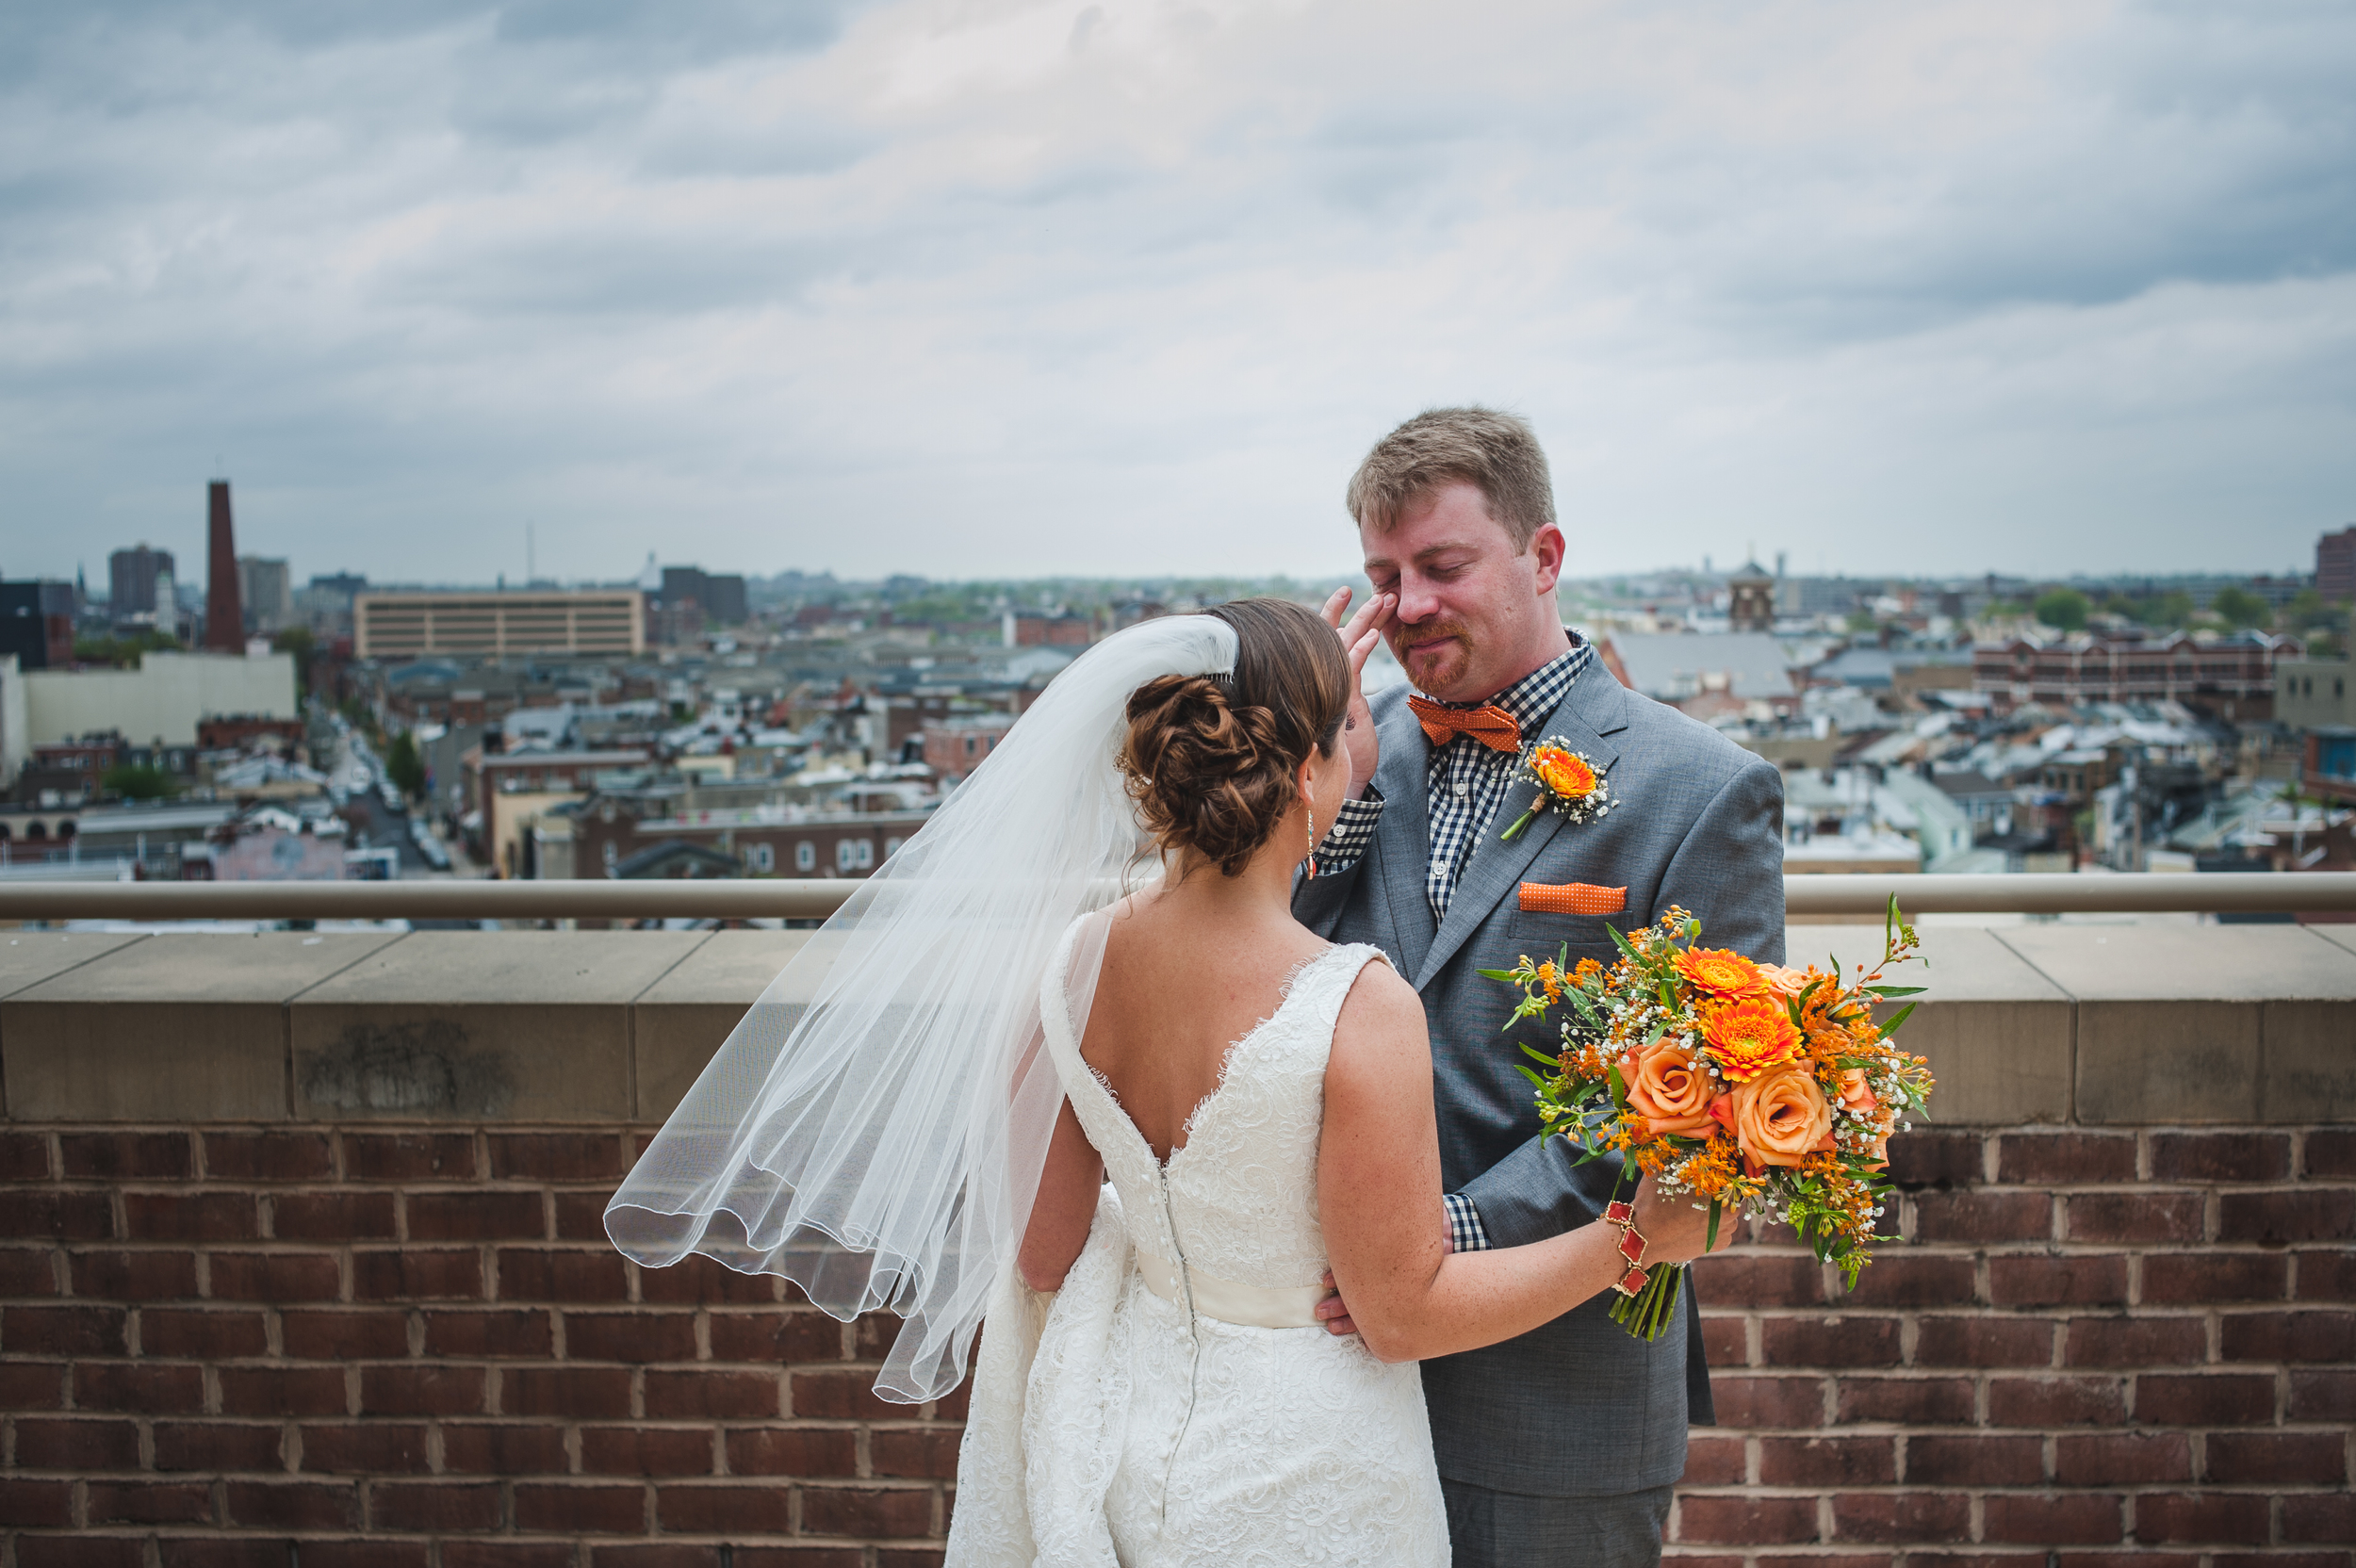 Baltimore Museum of Industry Wedding by Mantas Kubilinskas-13.jpg